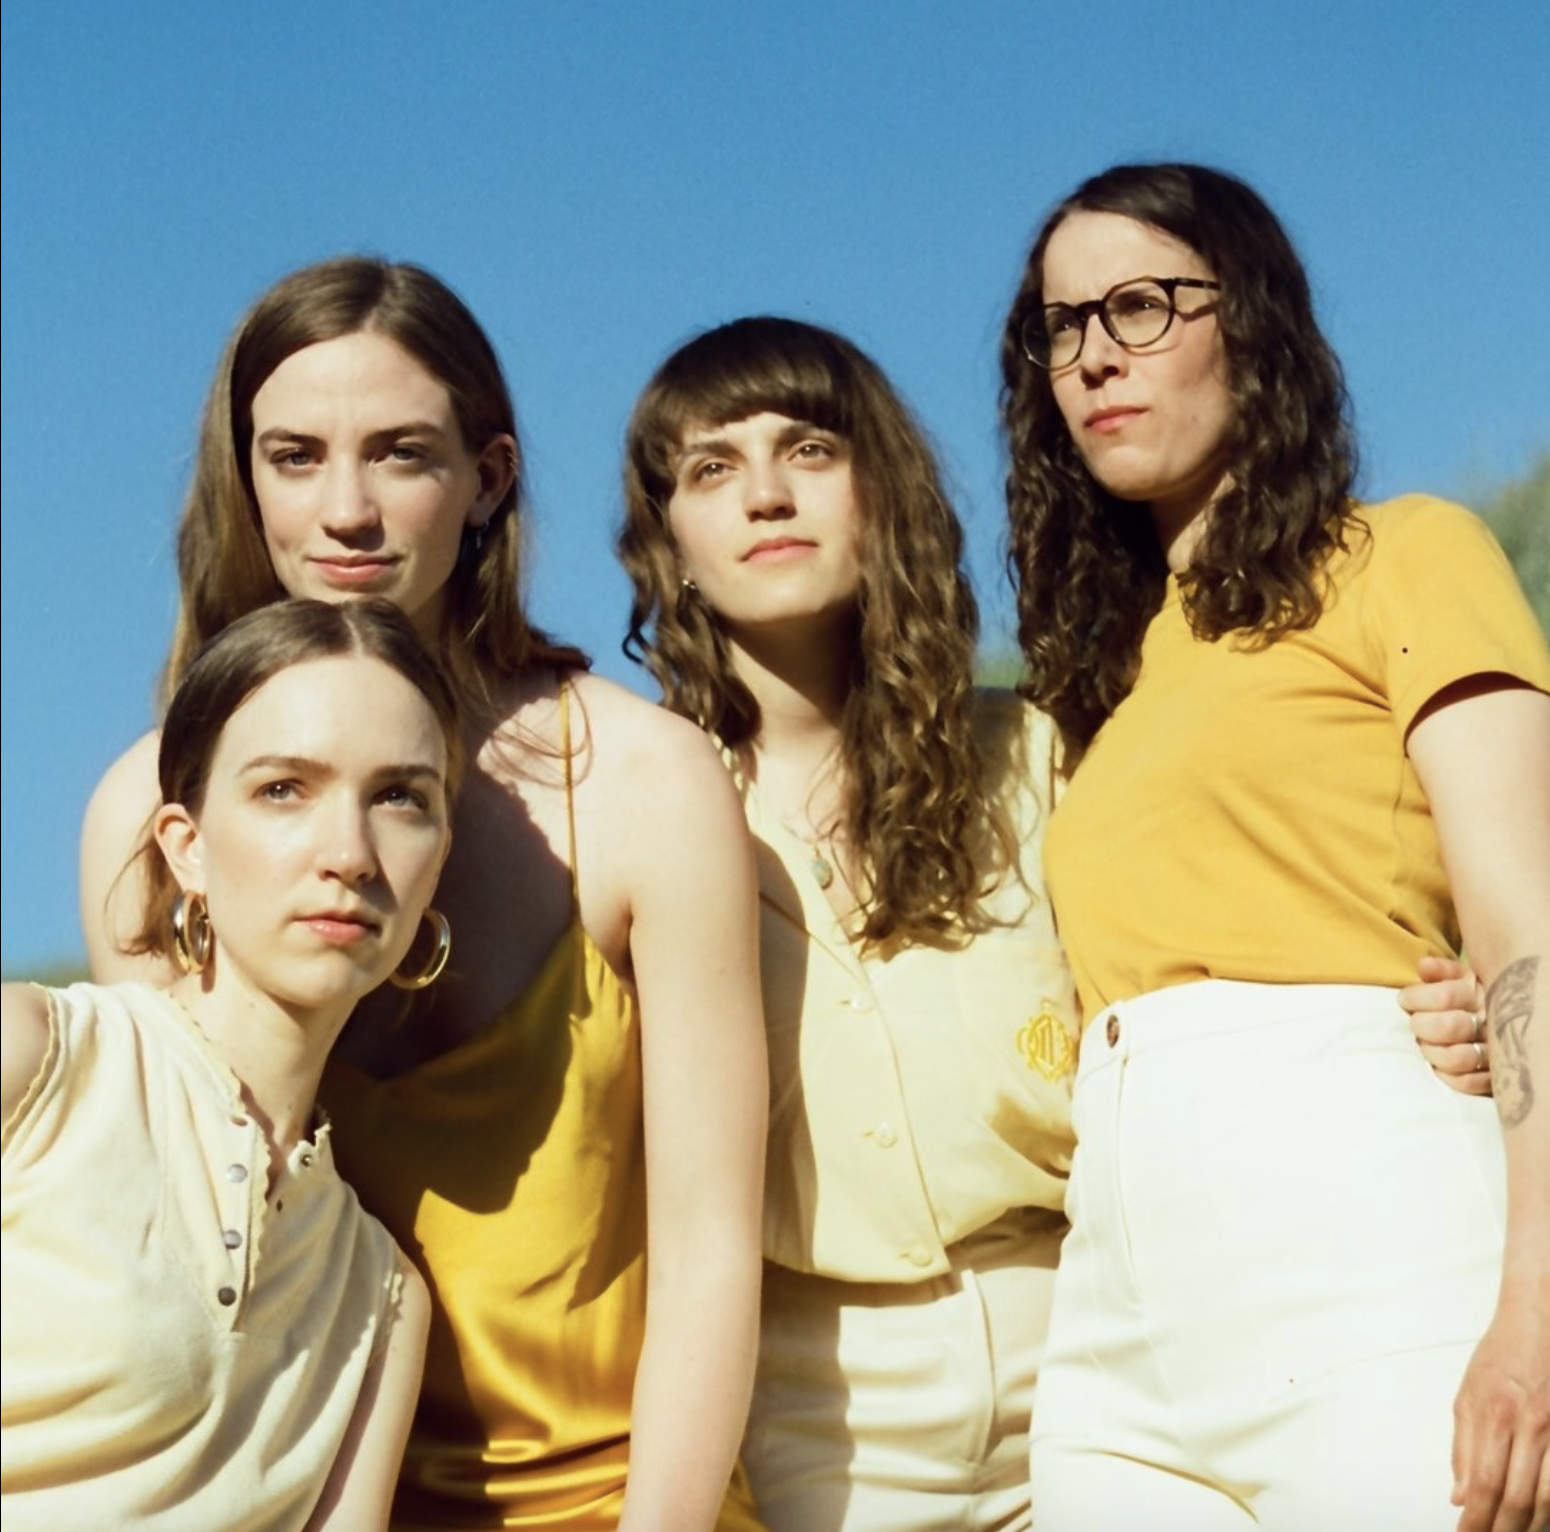 INTERVIEW: THE BIG MOON